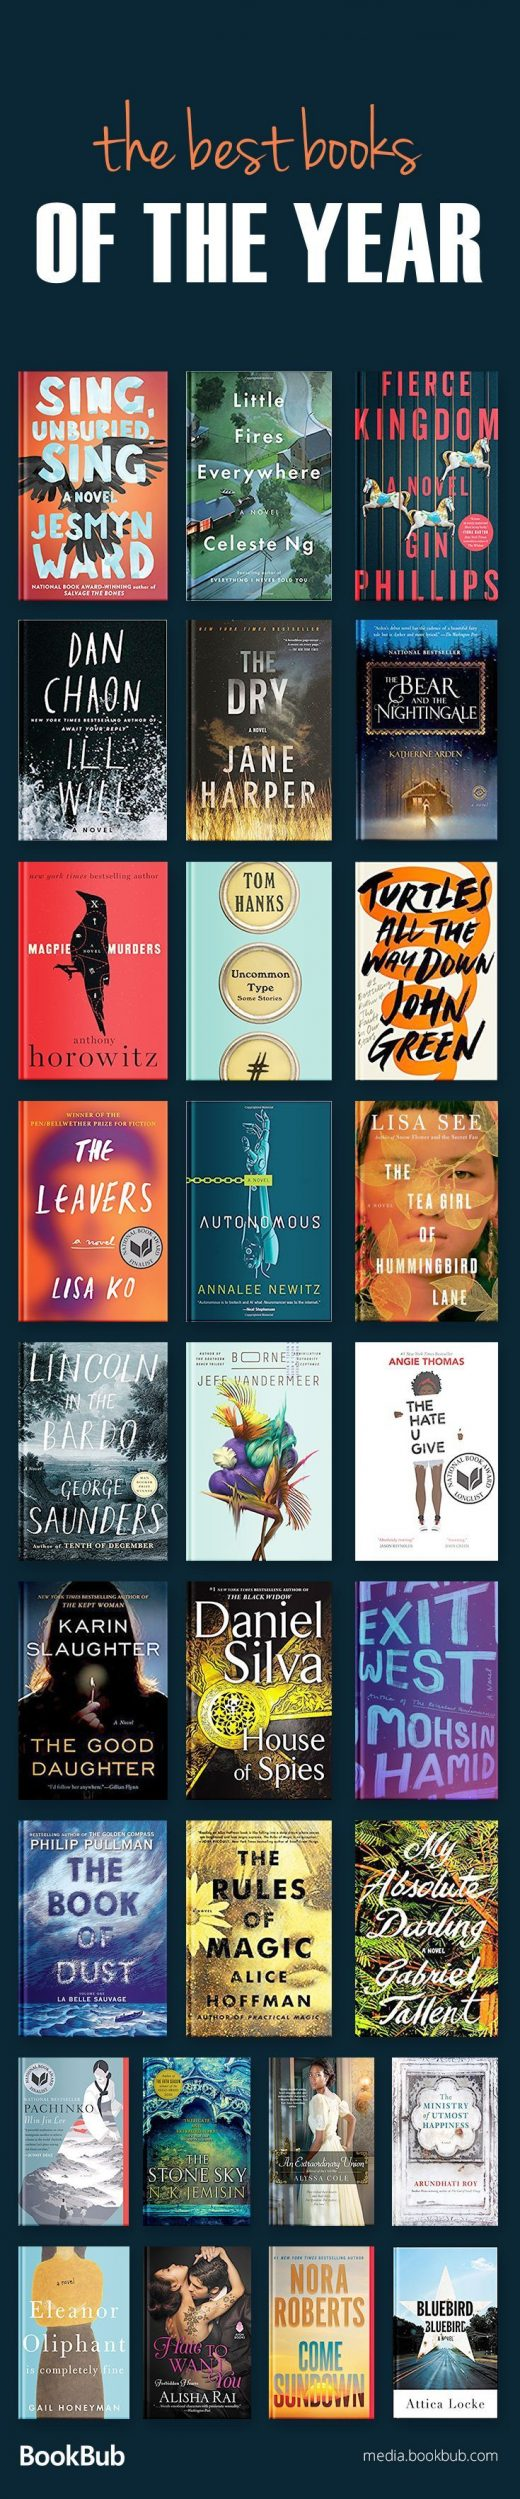 The Top 29 Books of the Year, According to Readers